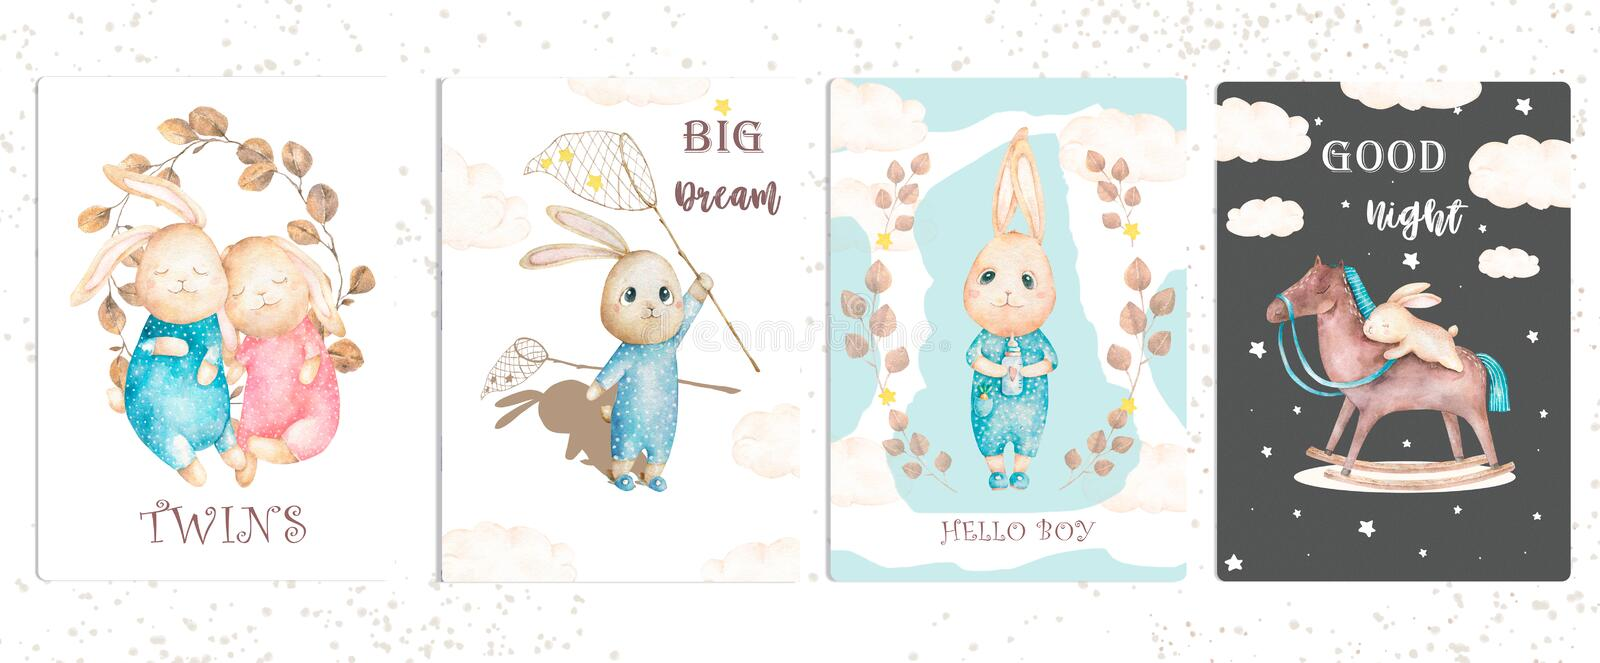 Cute watercolor set bunny birthday greeting cards,posters for baby room, baby shower, kids and baby t-shirts and wear. Hand drawn stock illustration